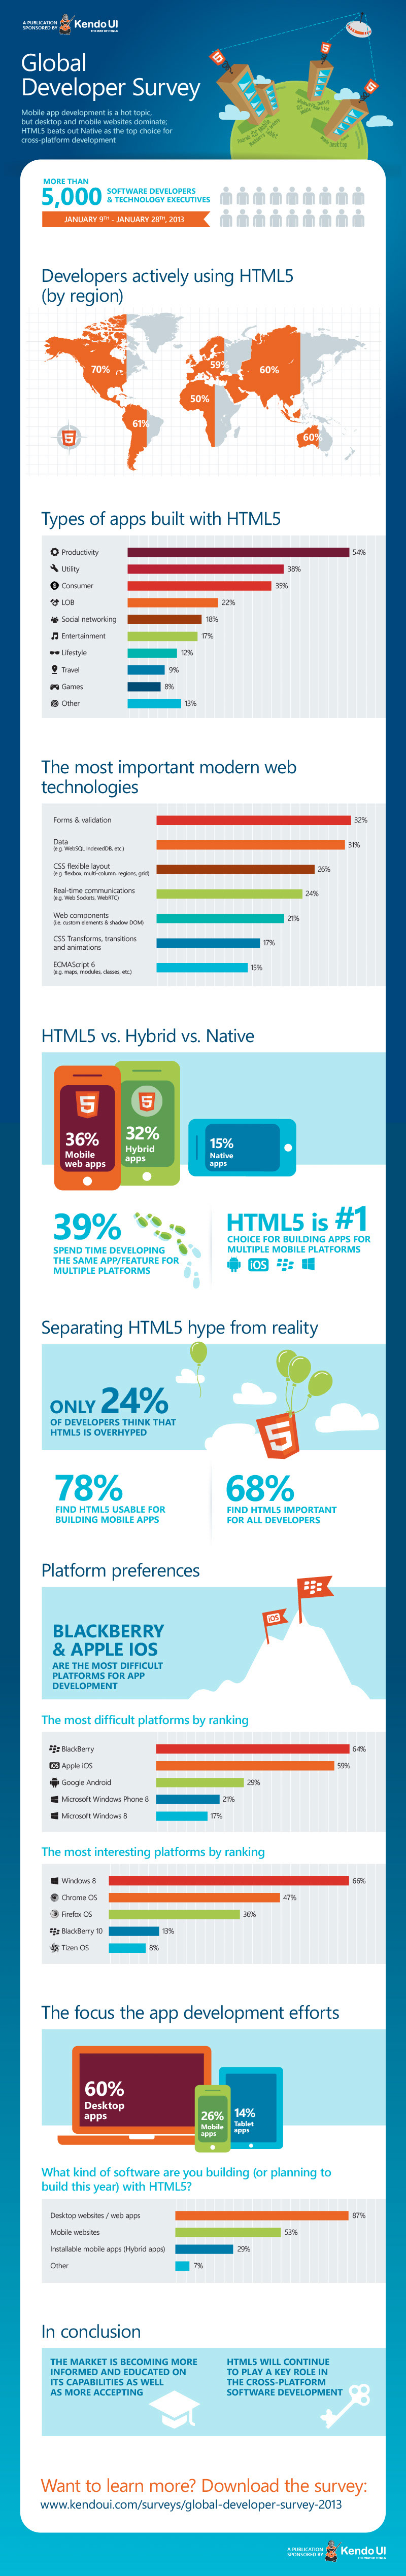 HTML5 vs Native vs Hybrid-Infographic